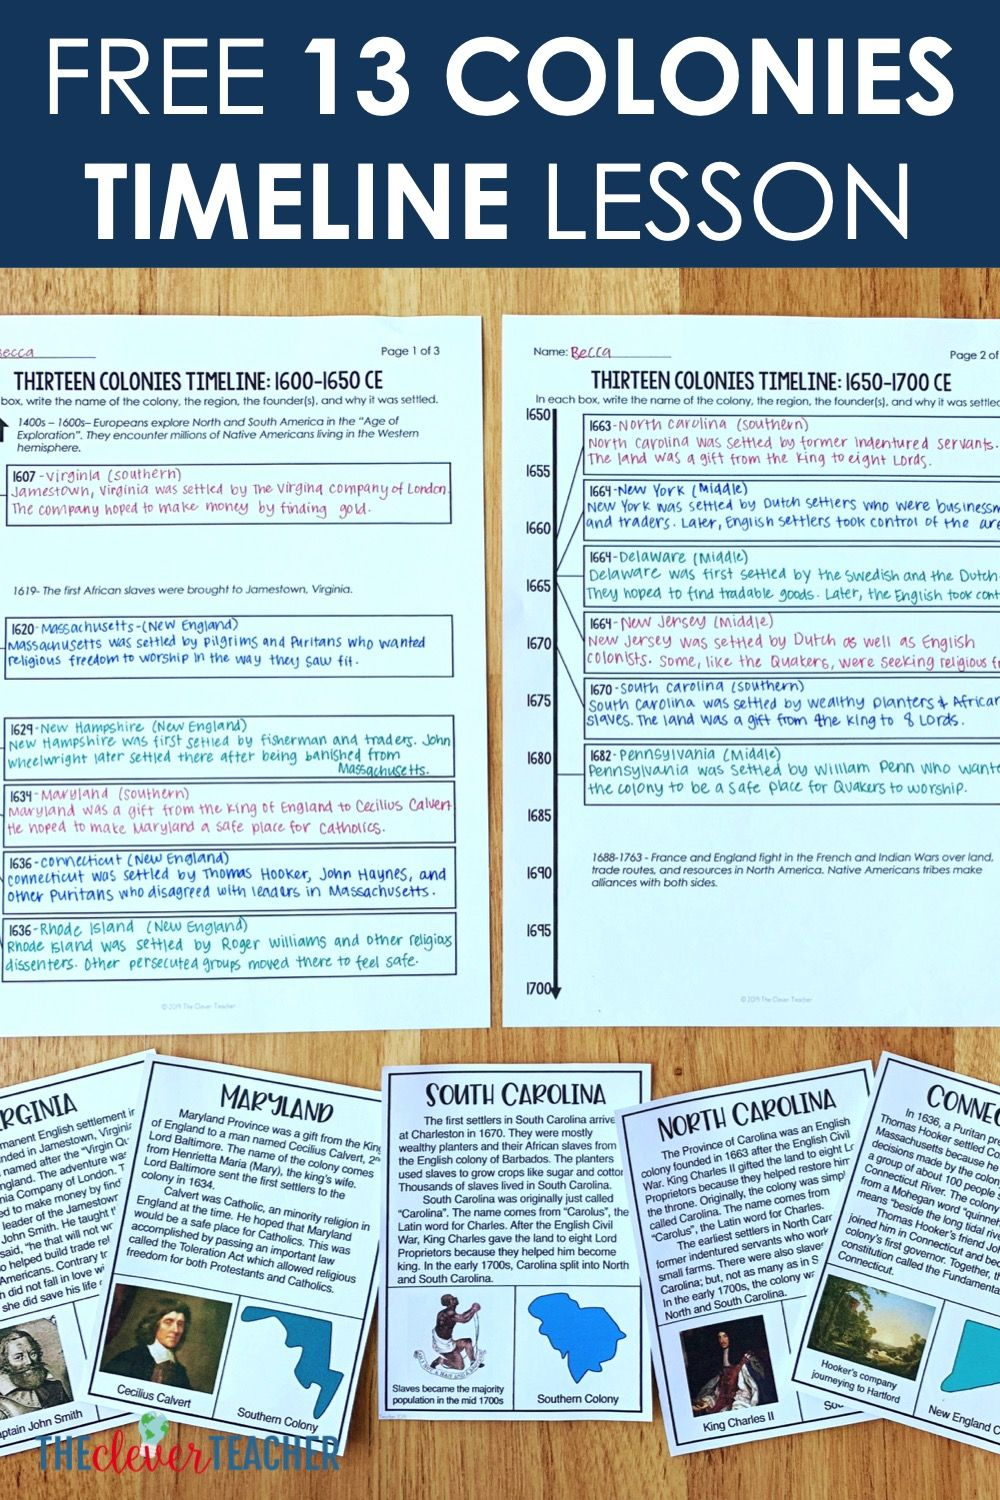 small resolution of Free 13 Colonies Timeline Lesson   Education middle school